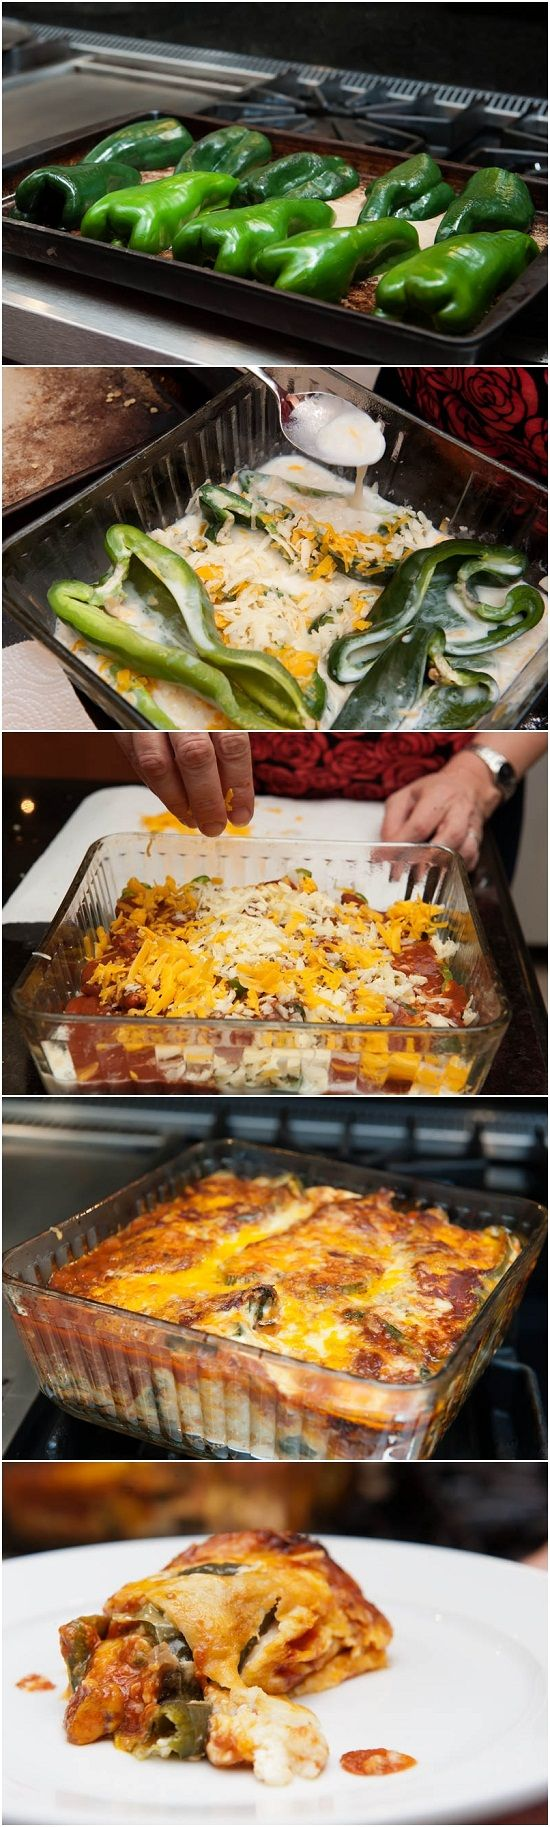 Easy Chiles Rellenos - Great vegetarian dish; looks way too easy not to give it a try! [ MexicanConnexionforTile.com ] #food #Talavera #Mexican